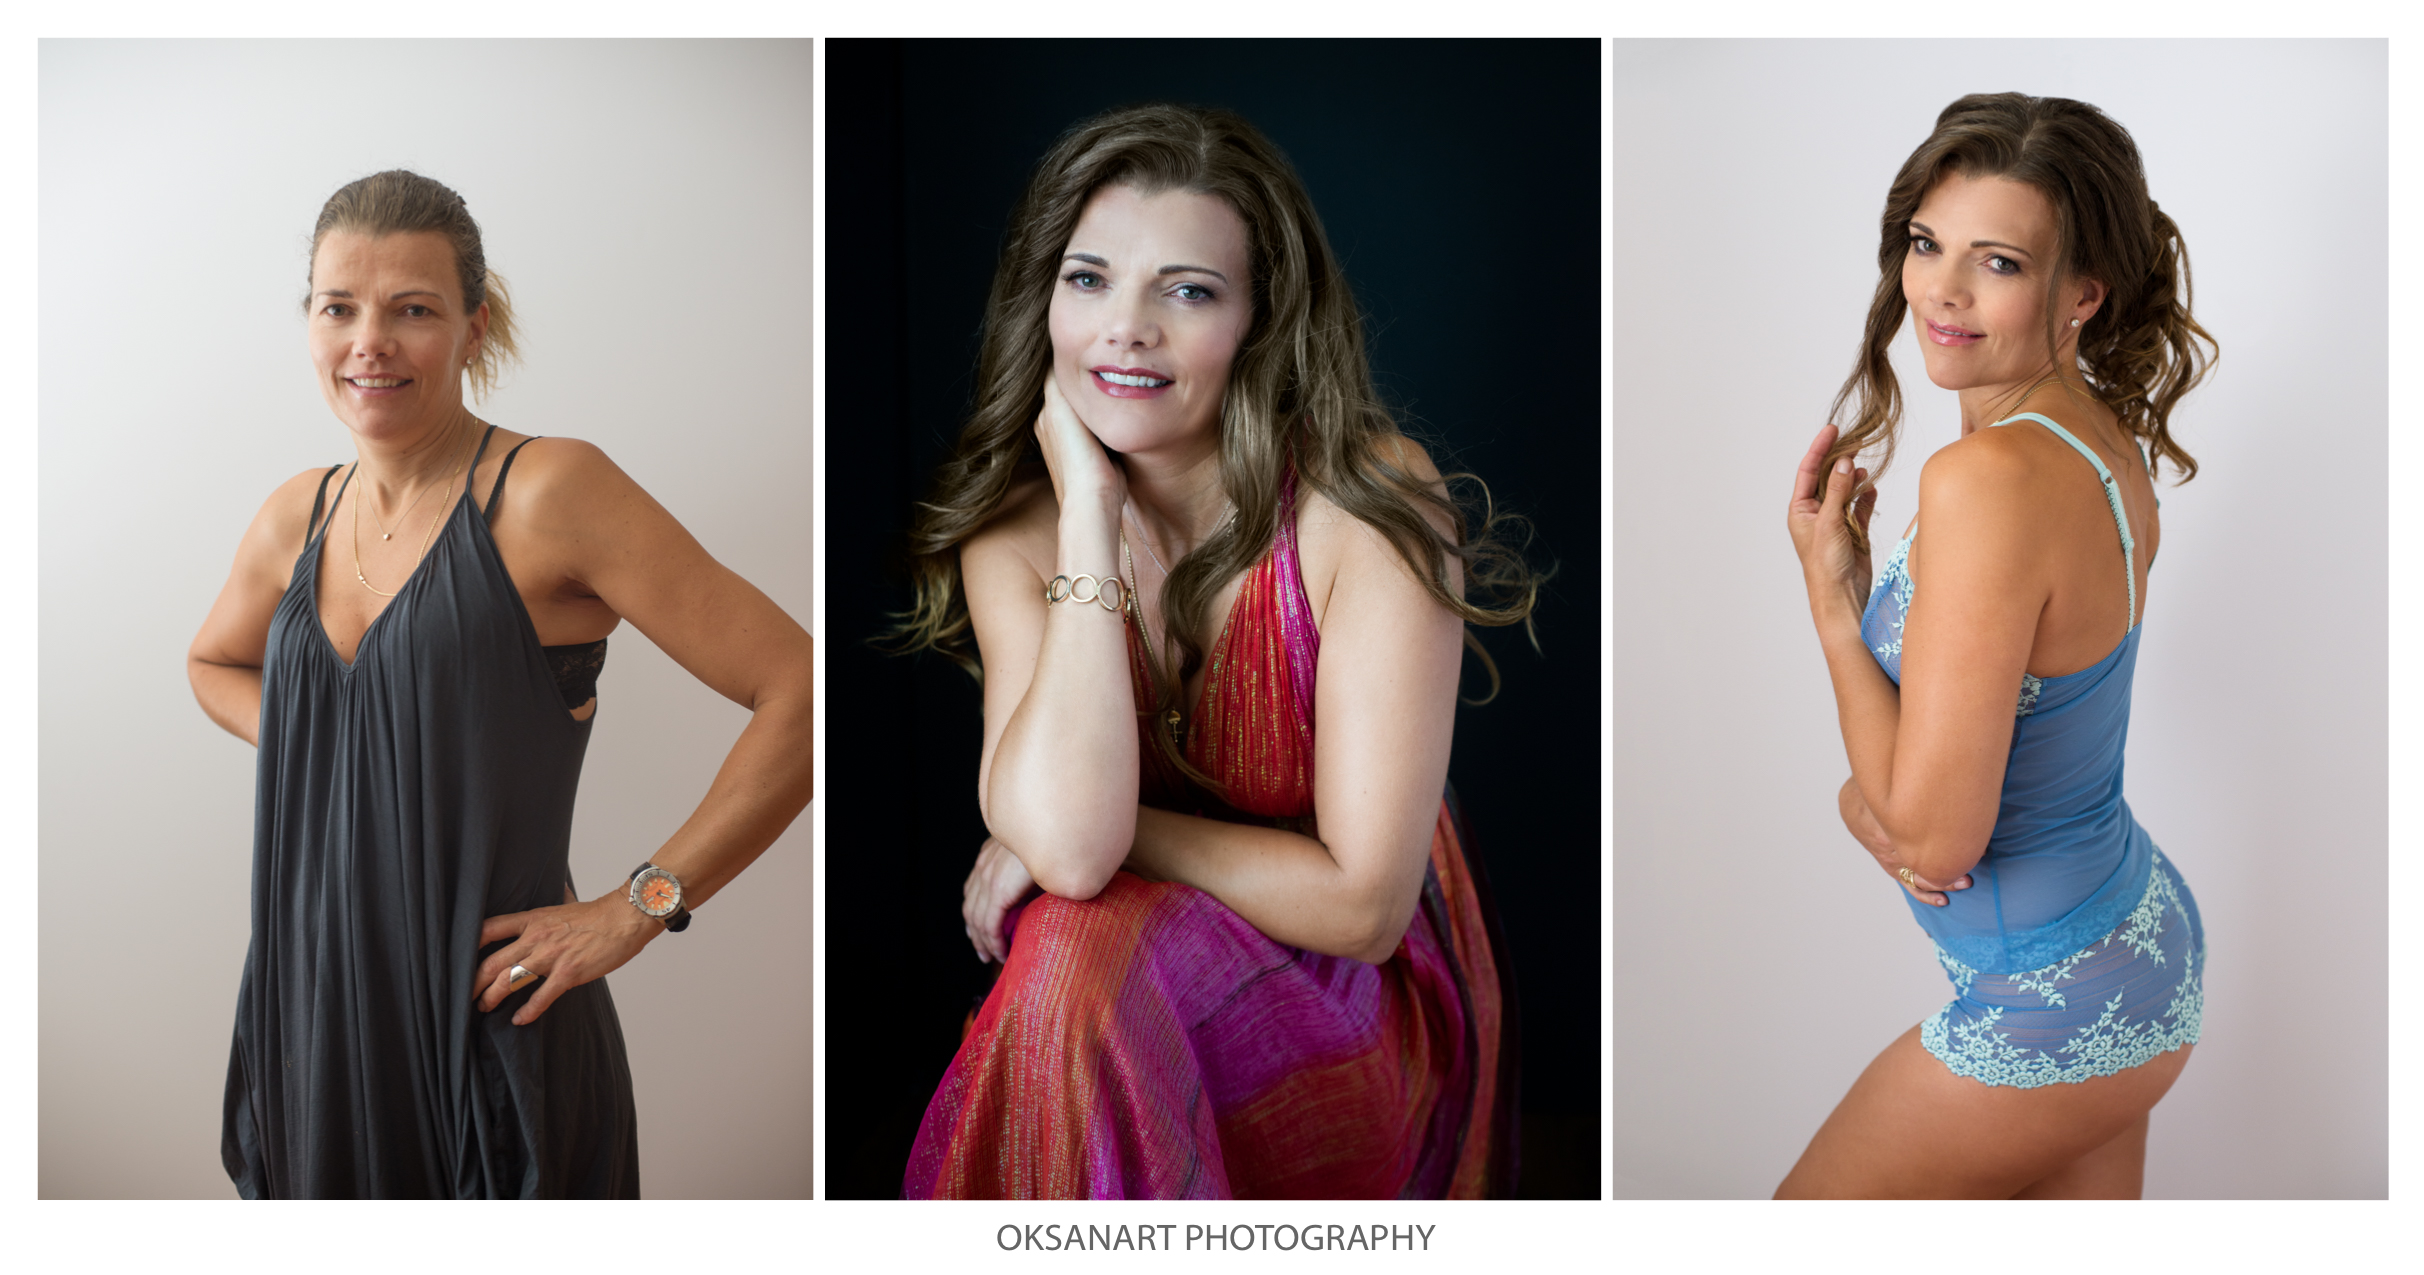 Oksanart_glamour_boudoir_photography_before and after_inland empire.jpg